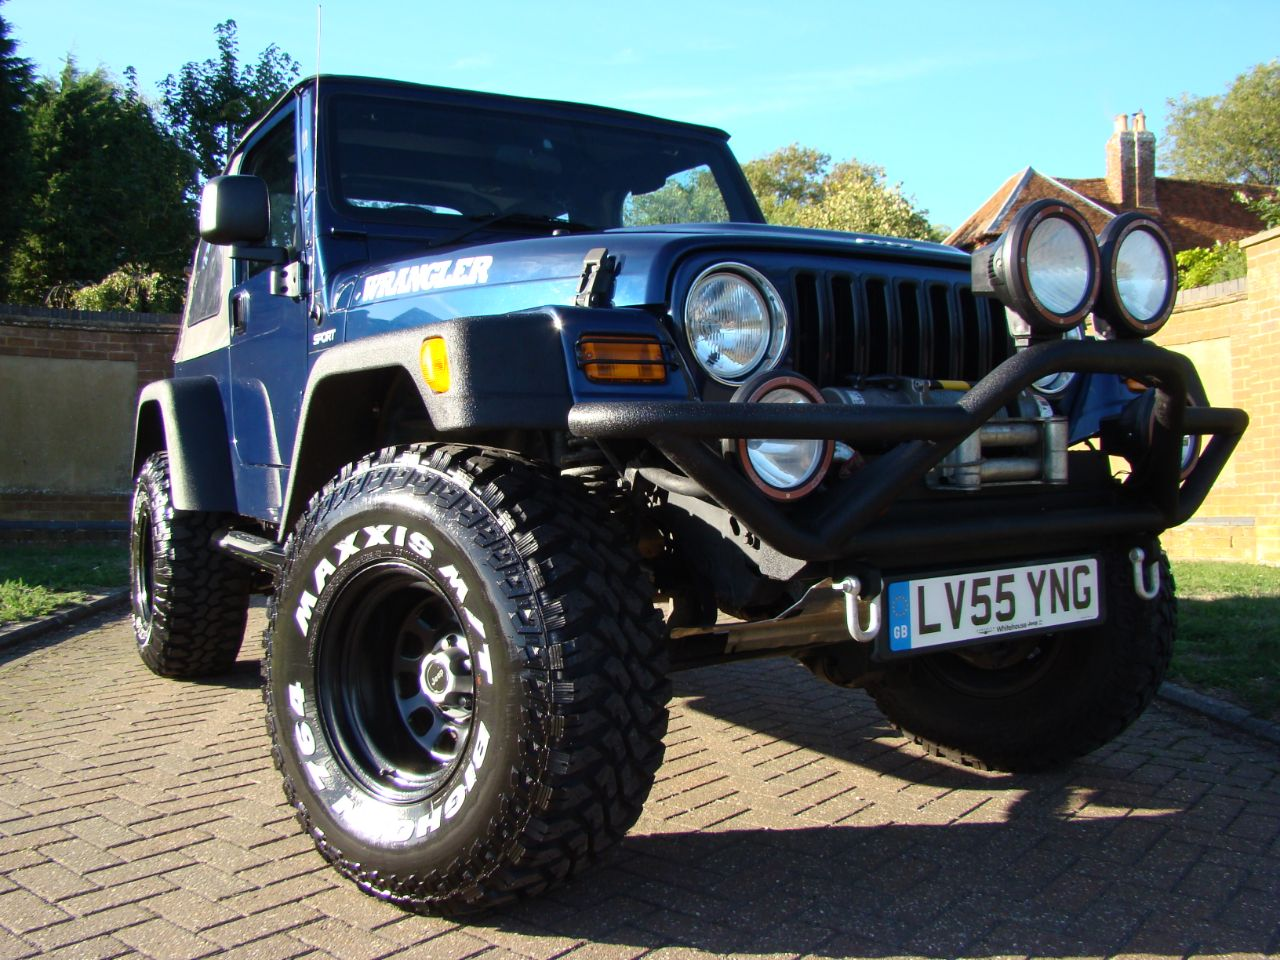 Jeep Wrangler 4.0 Sport 2dr 6 Speed Soft Top Convertible Petrol Blue at Jeep Wranglers Leighton Buzzard